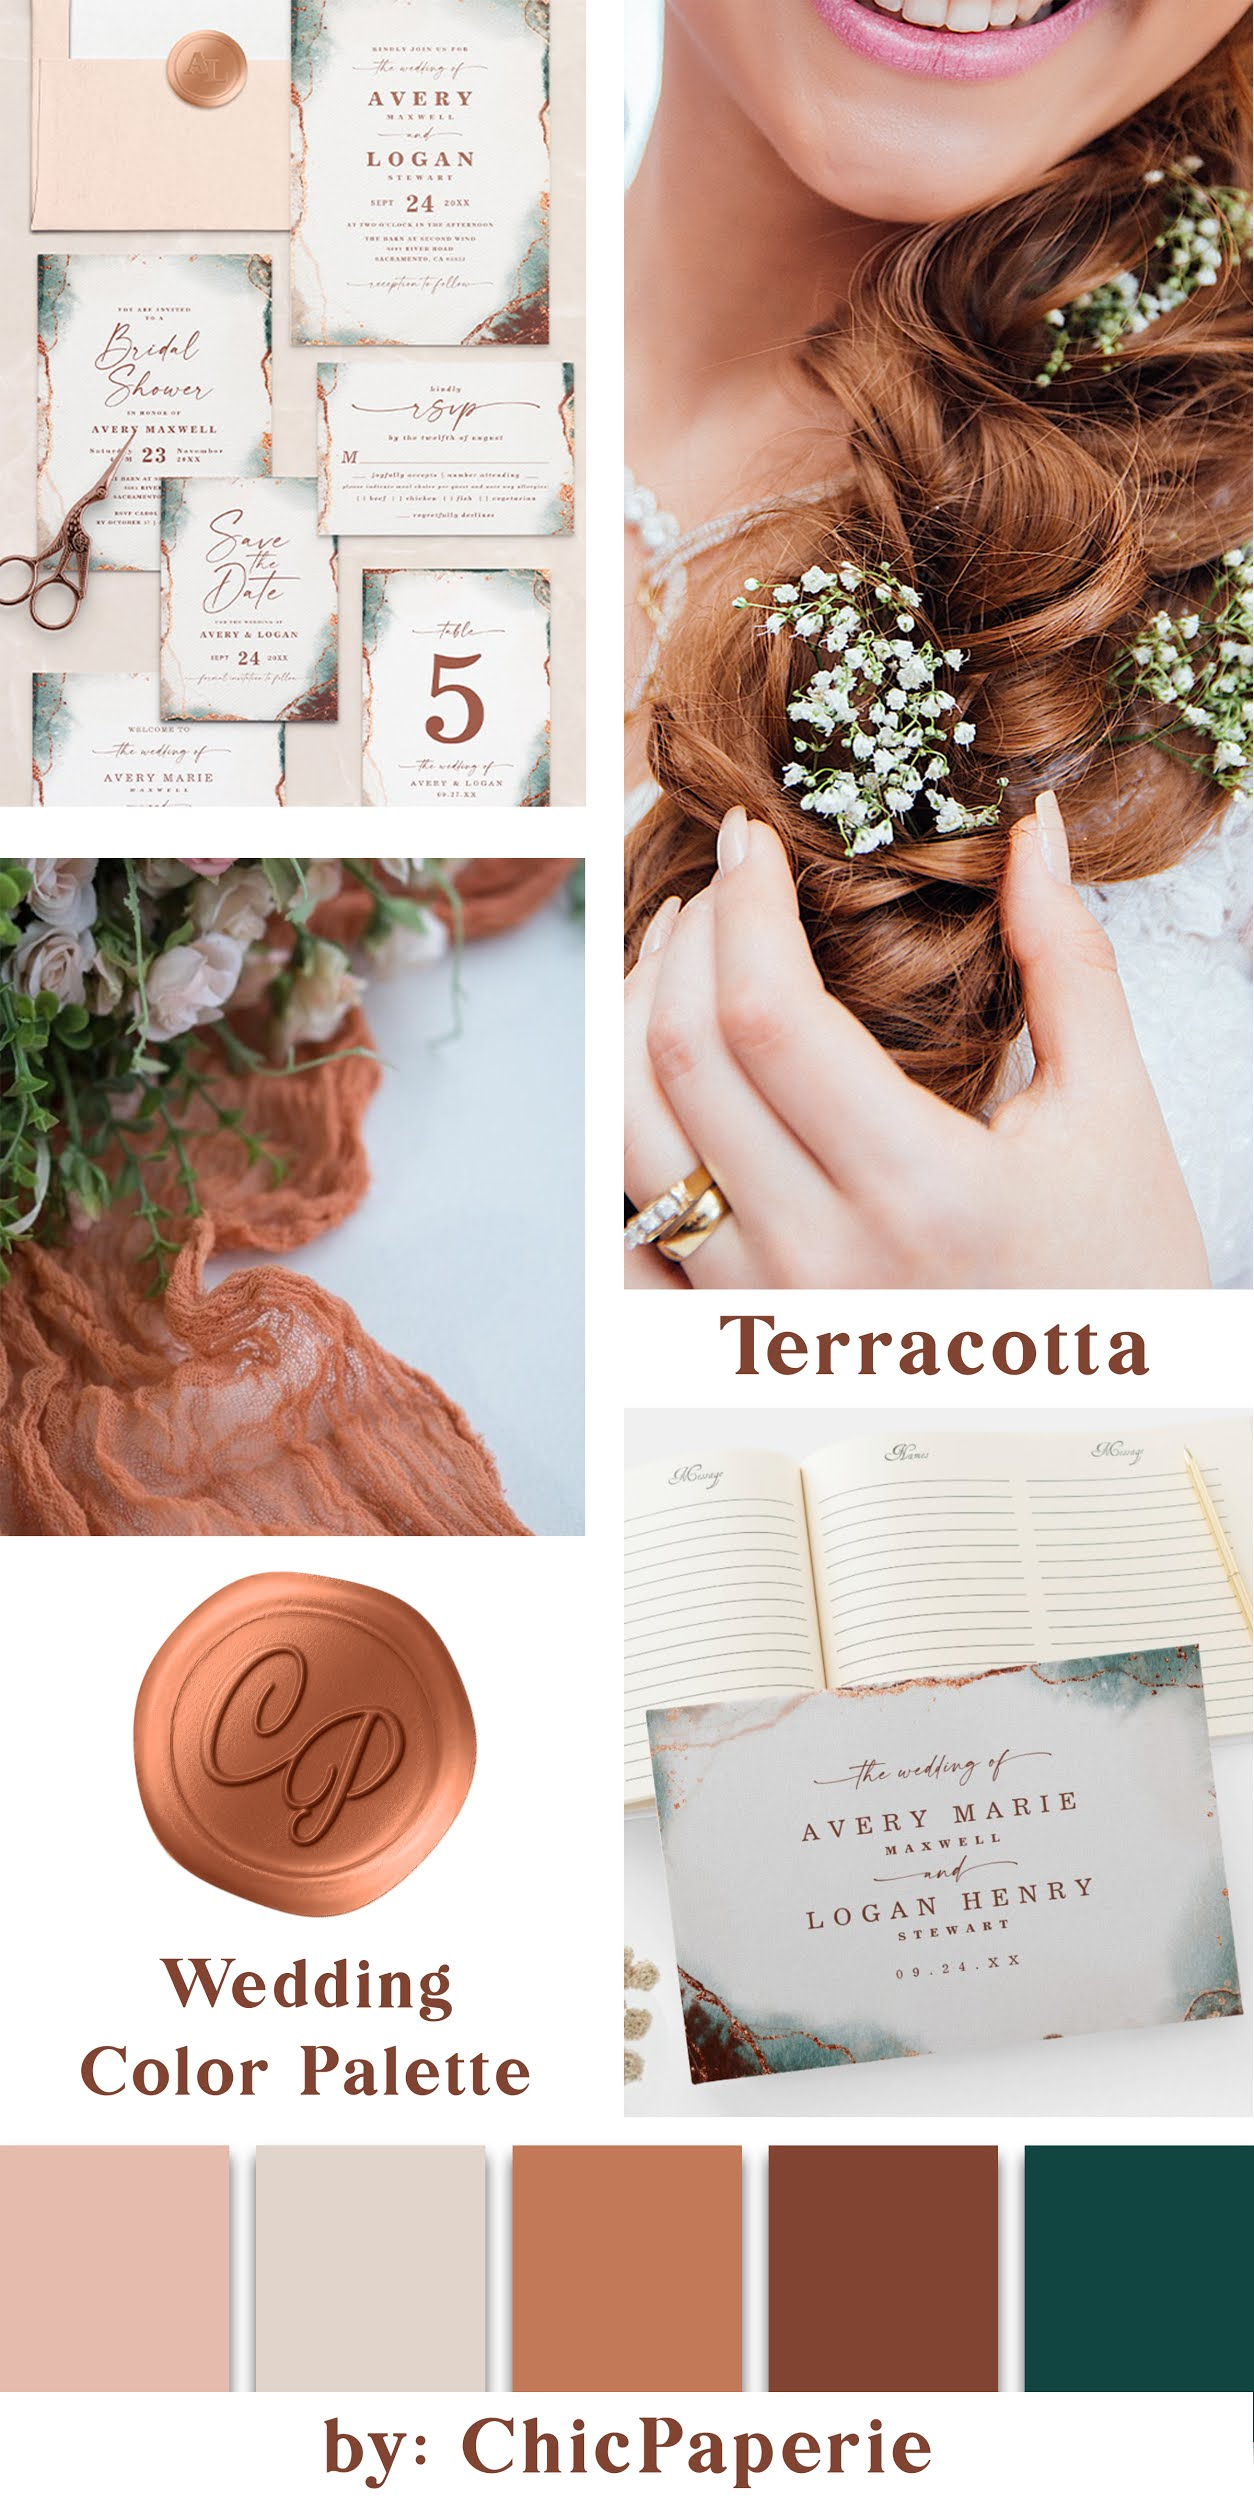 Terracotta Wedding Details, Decorations, and Color Accents